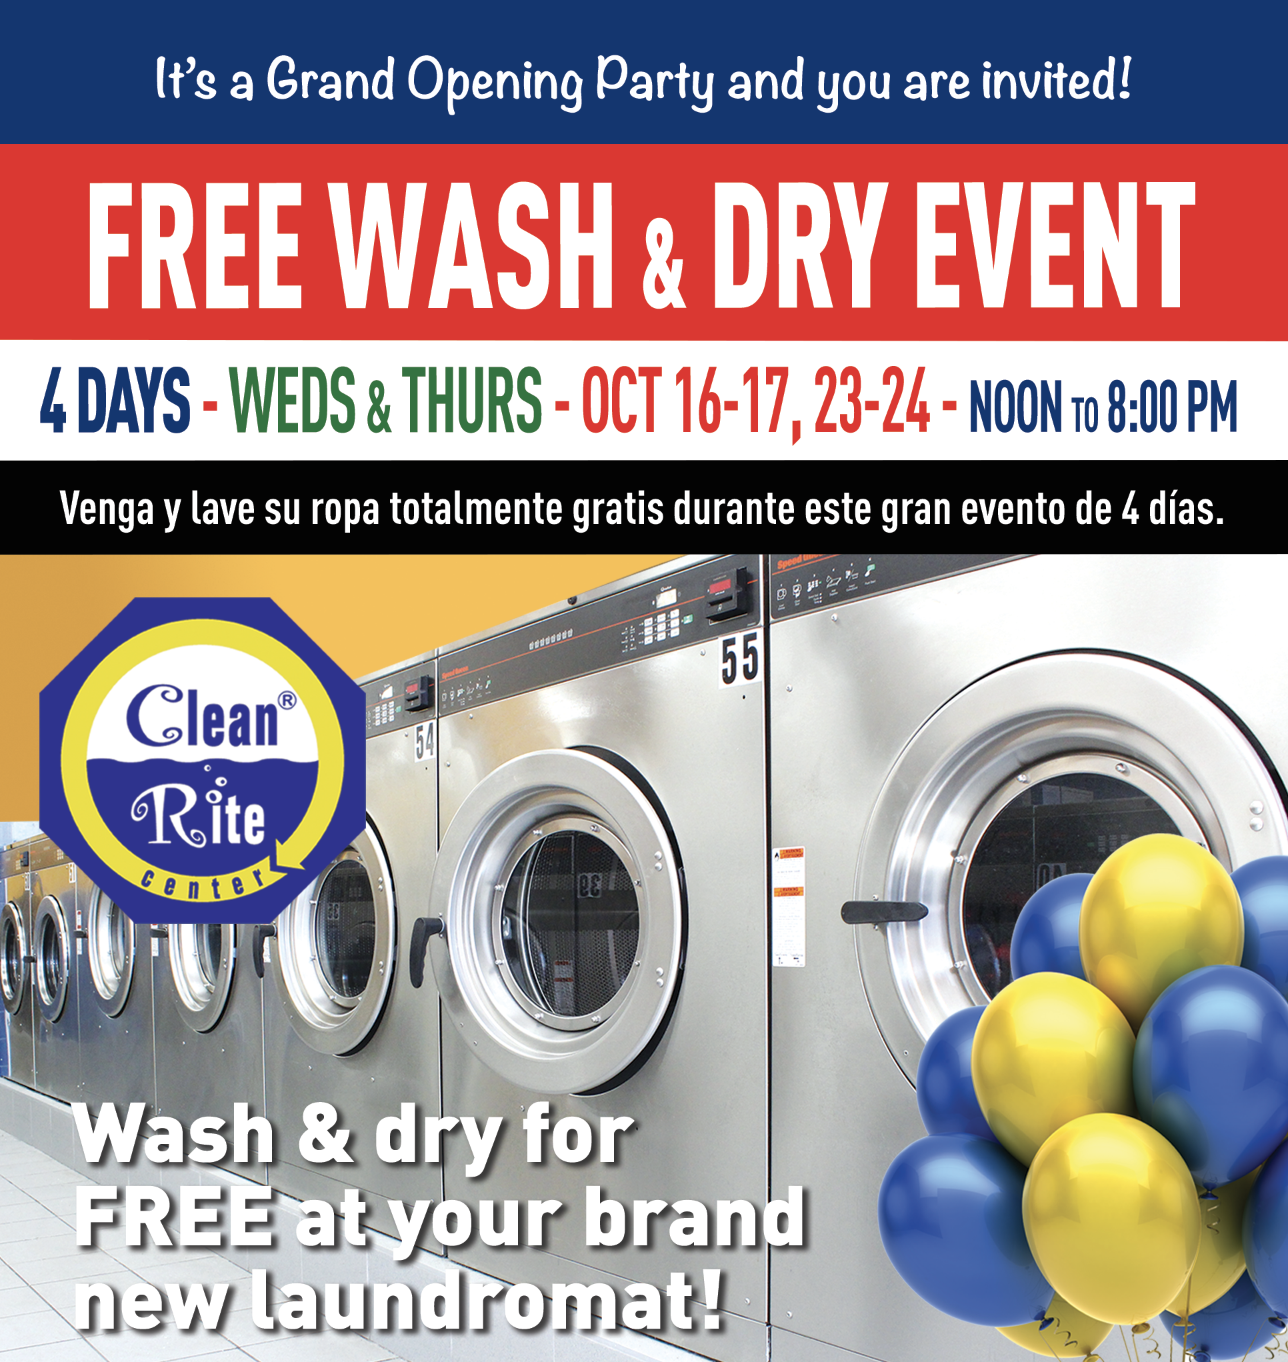 4-Day Free Wash, Free Dry Event in Allentown, PA